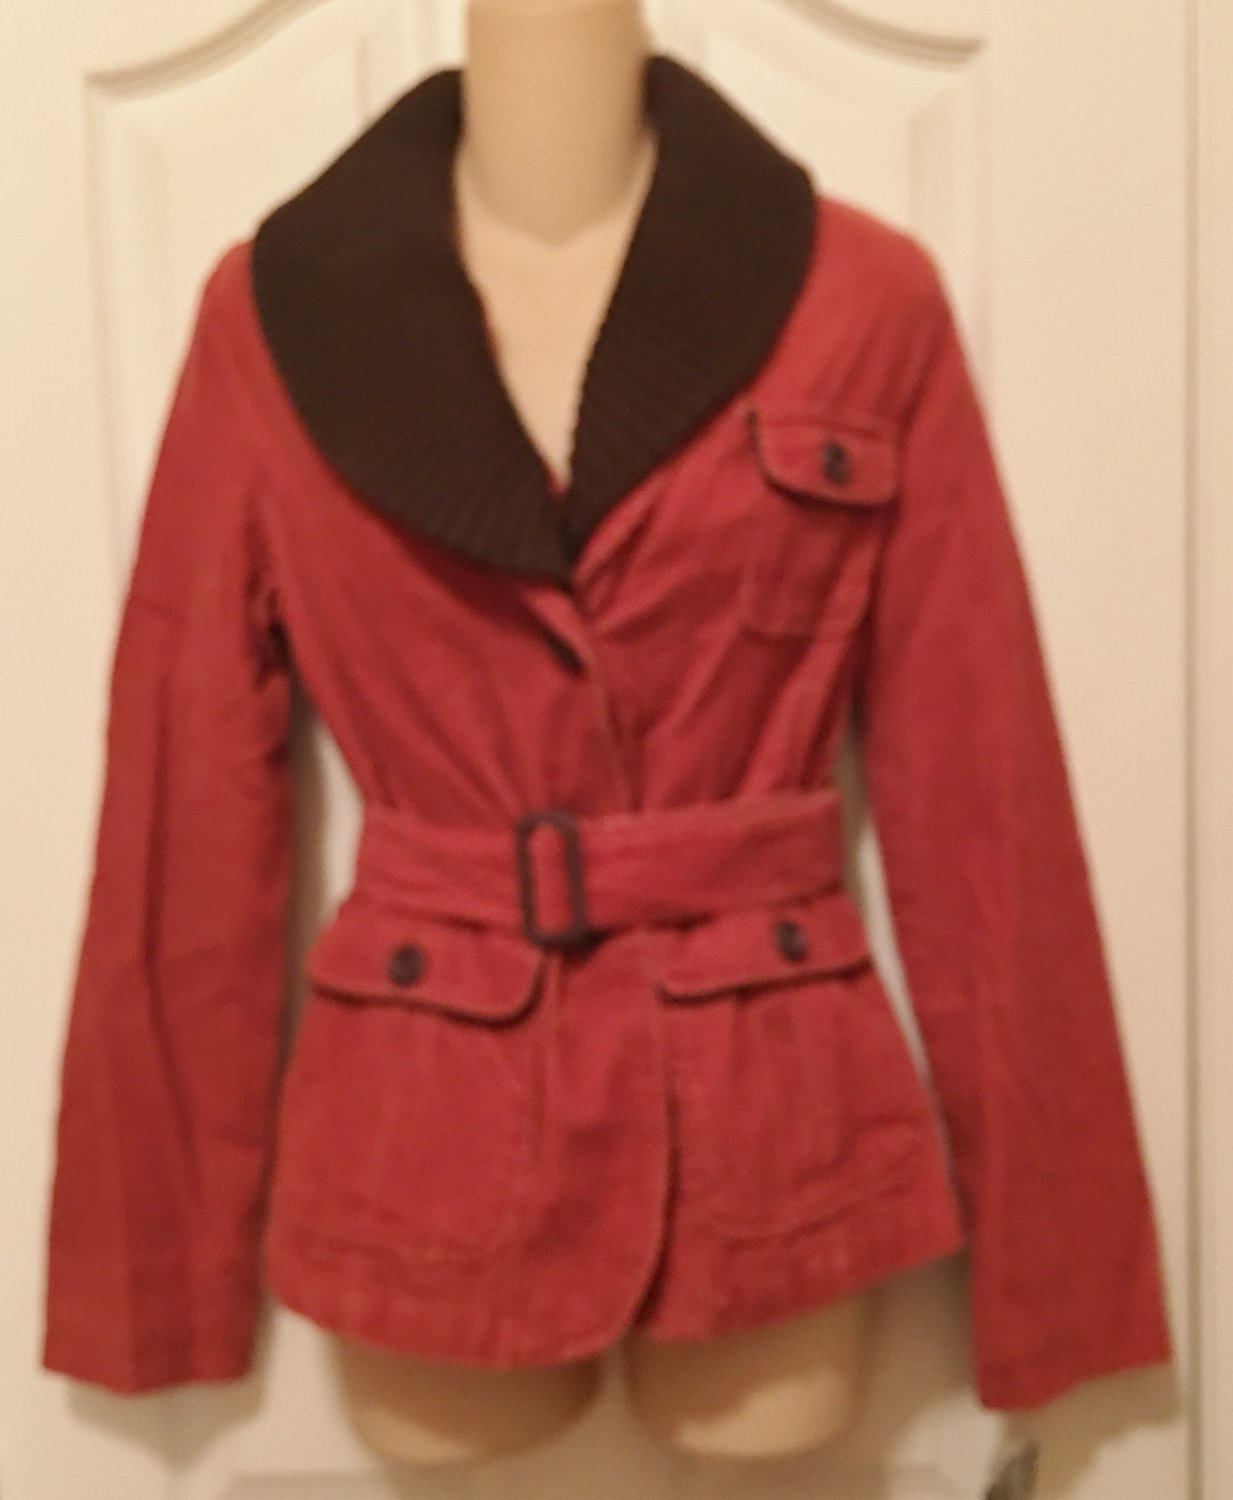 NWT Merona BELTED CORD JACKET Ladies Coat XS BURNT ORANGE Removable Collar